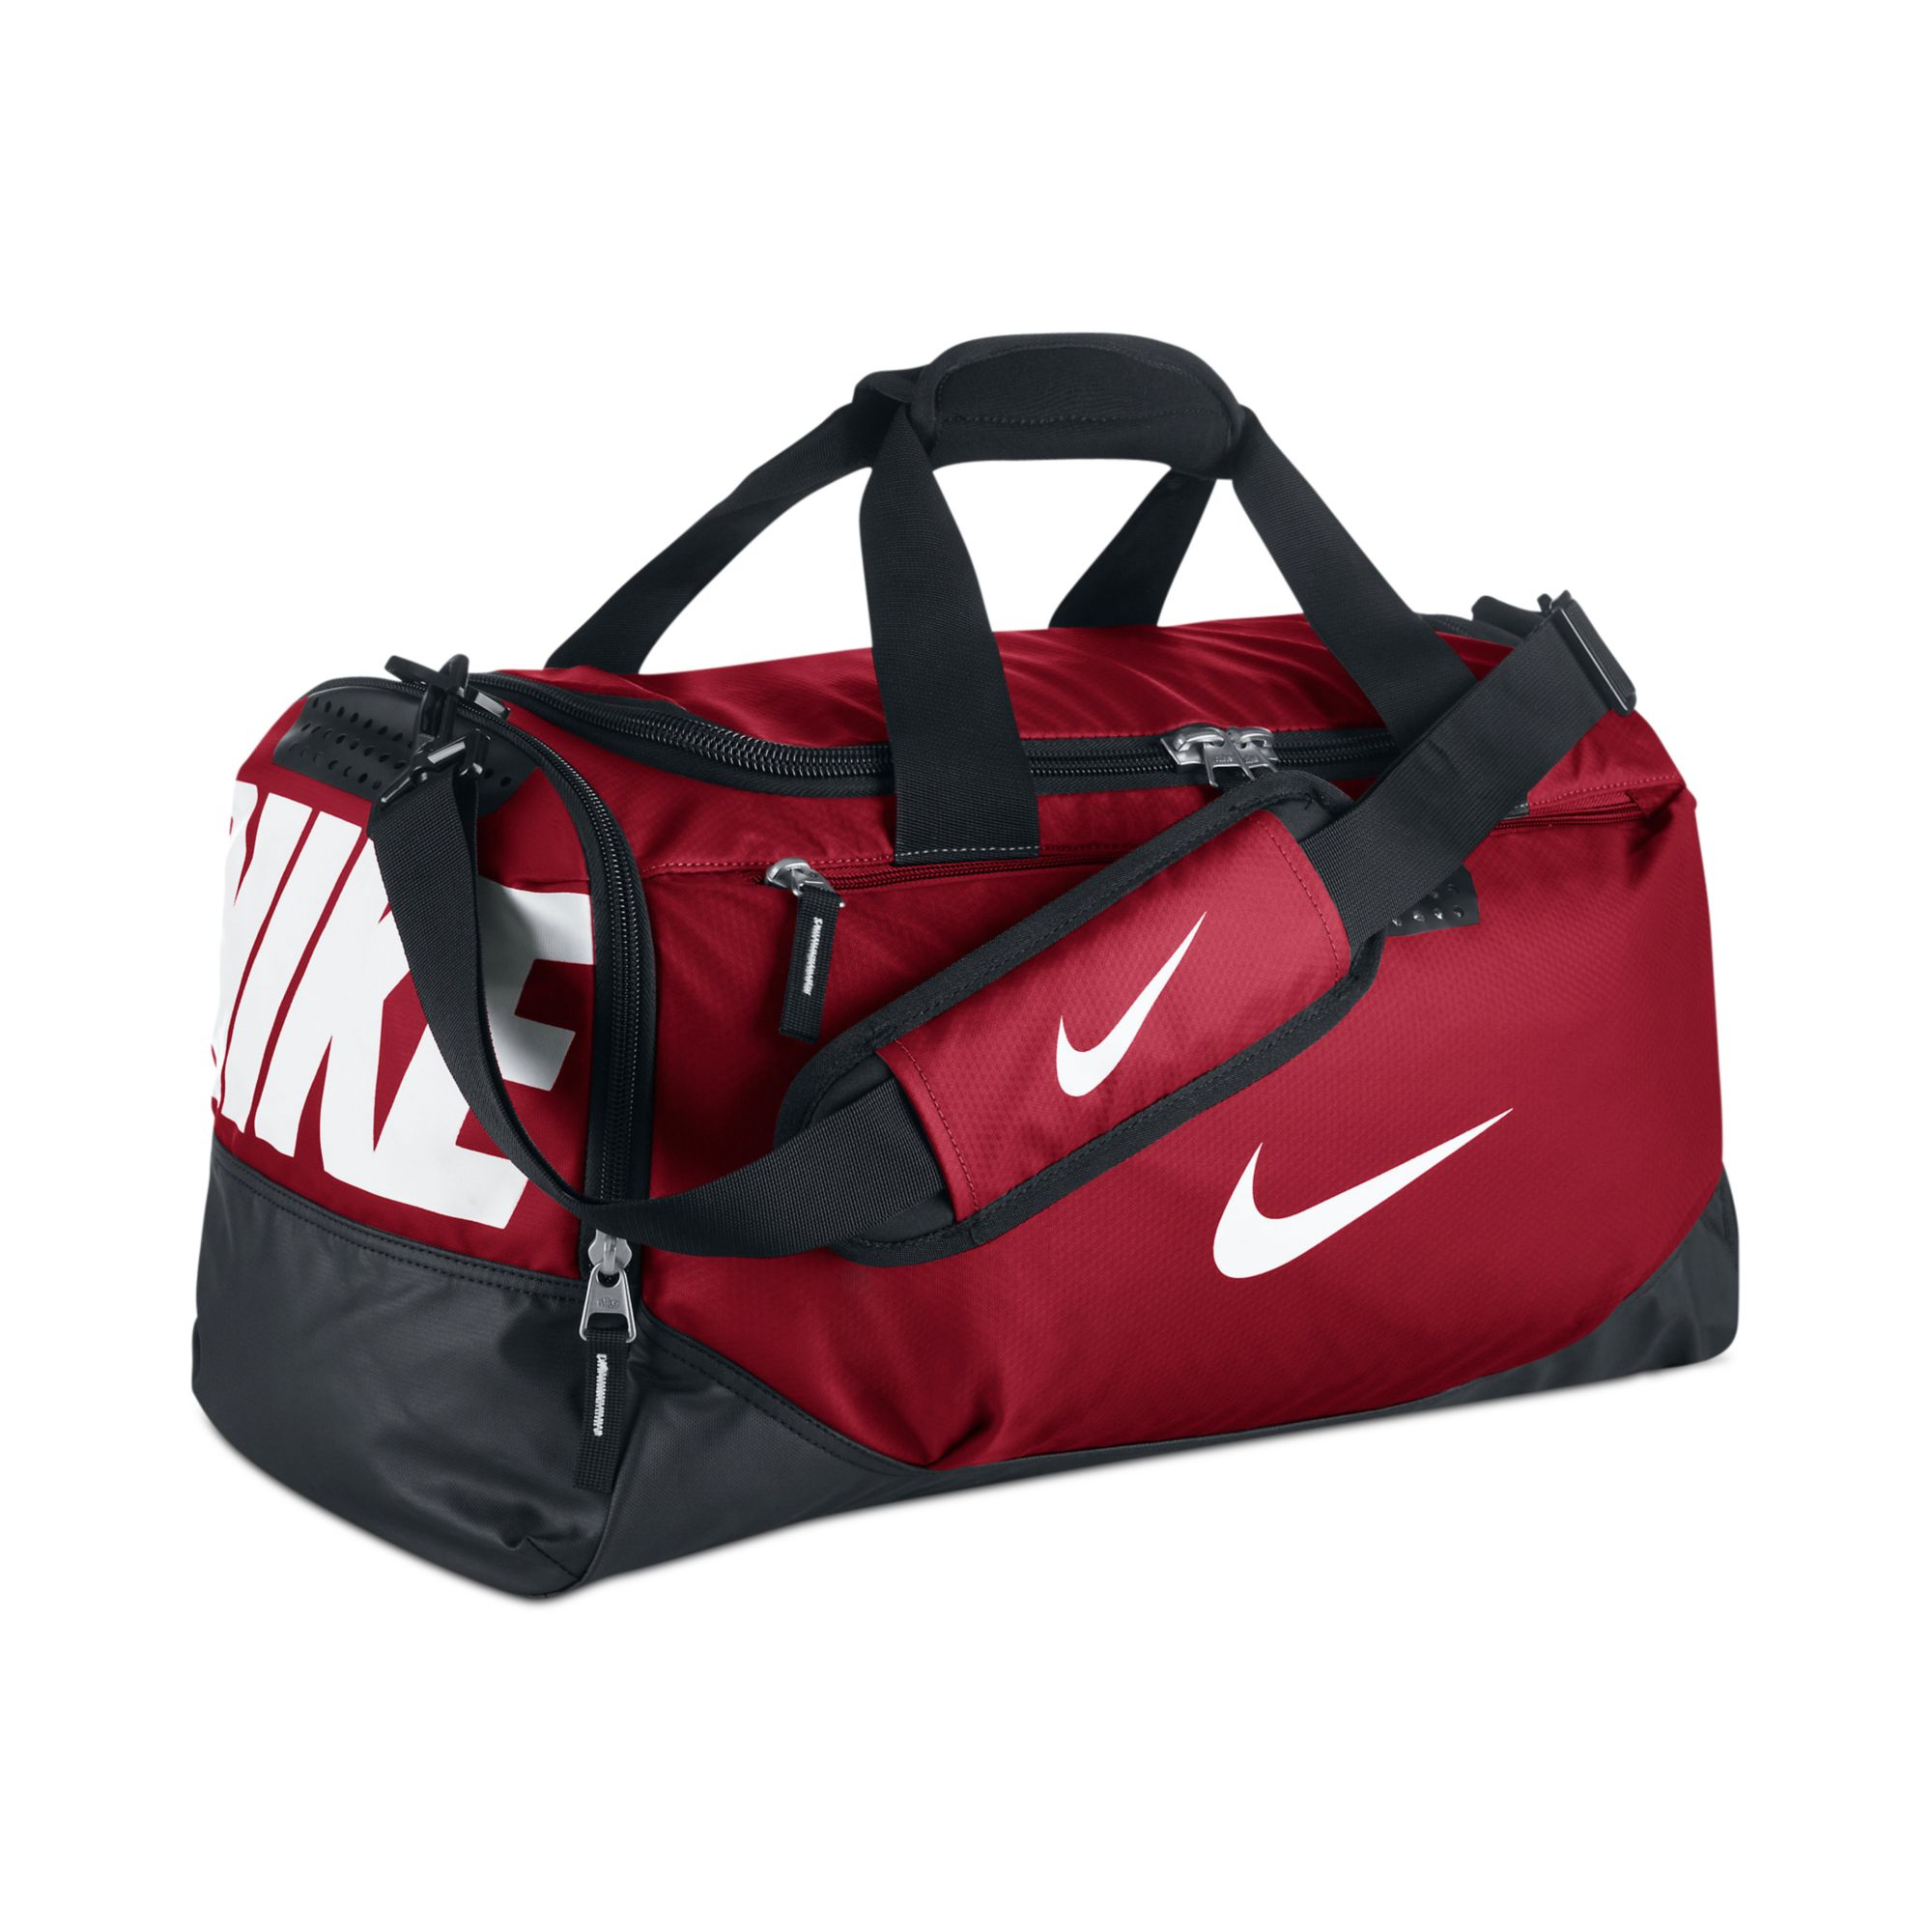 7902e01f7a7a Personalised Gym Bags Nike